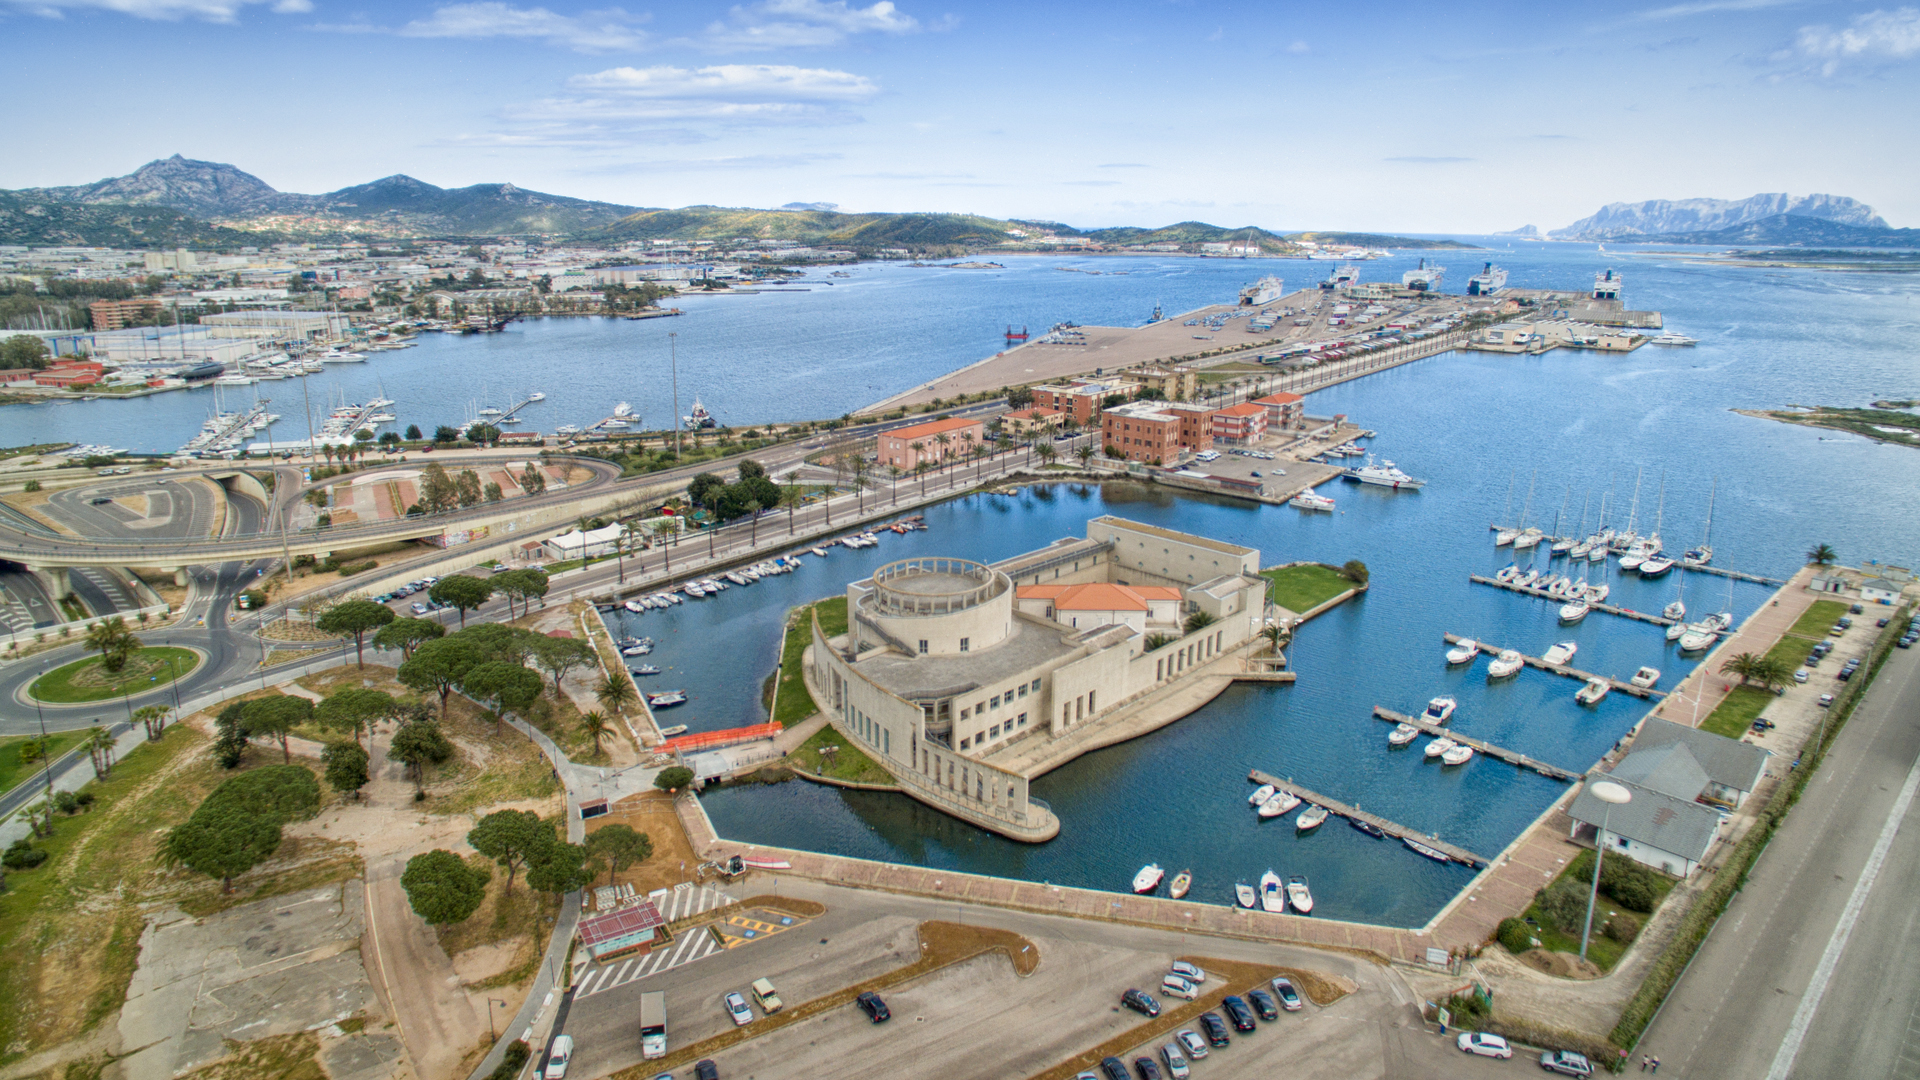 Olbia: a city for tourists